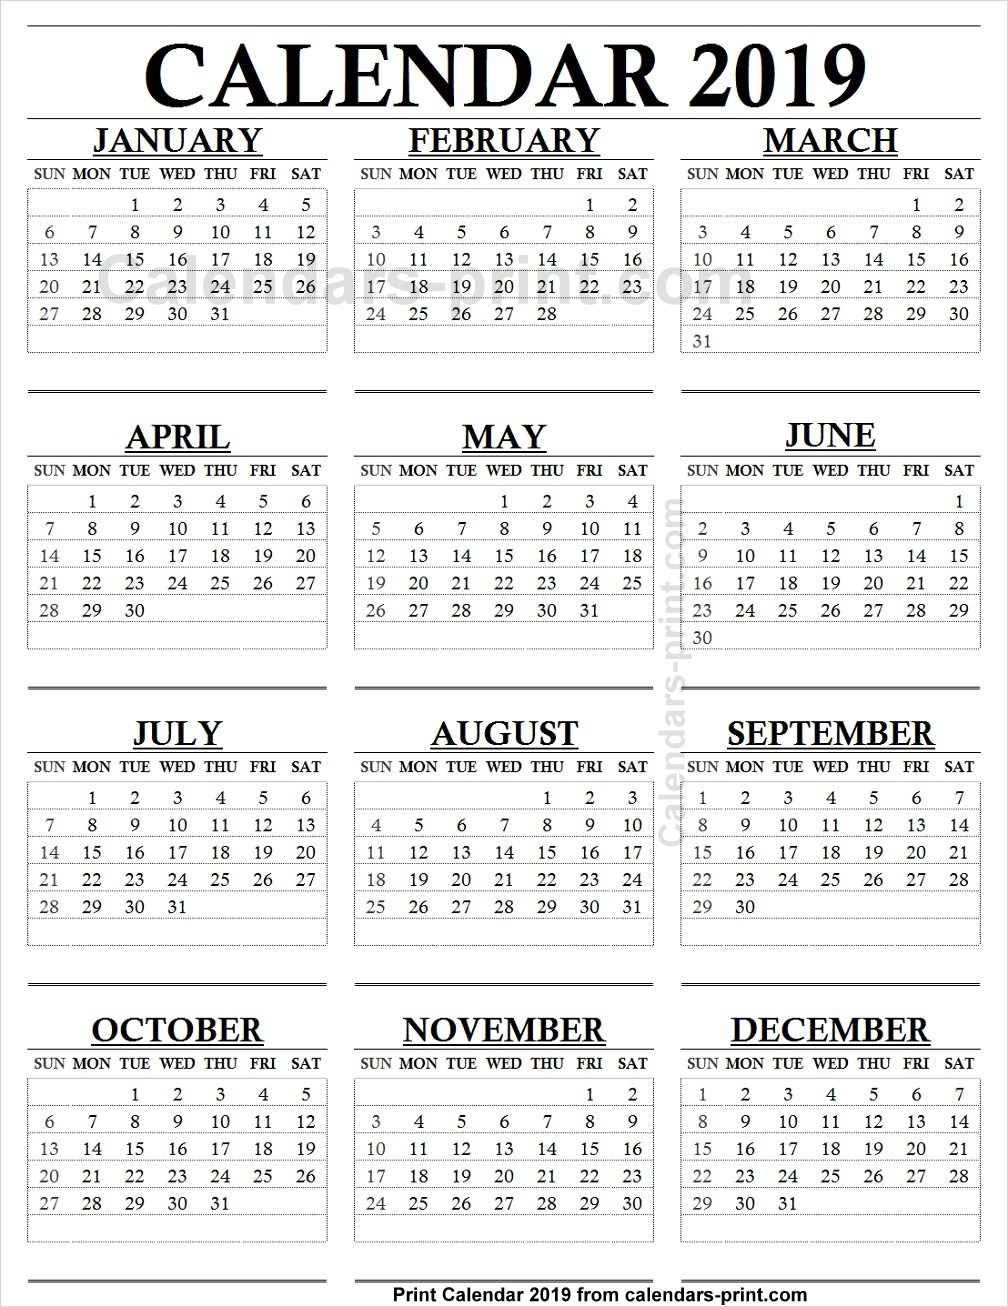 12 Month Calendar 2019 One Page To Print Free | Blank Pdf Template throughout Monthly Calendar Templates 12 Months